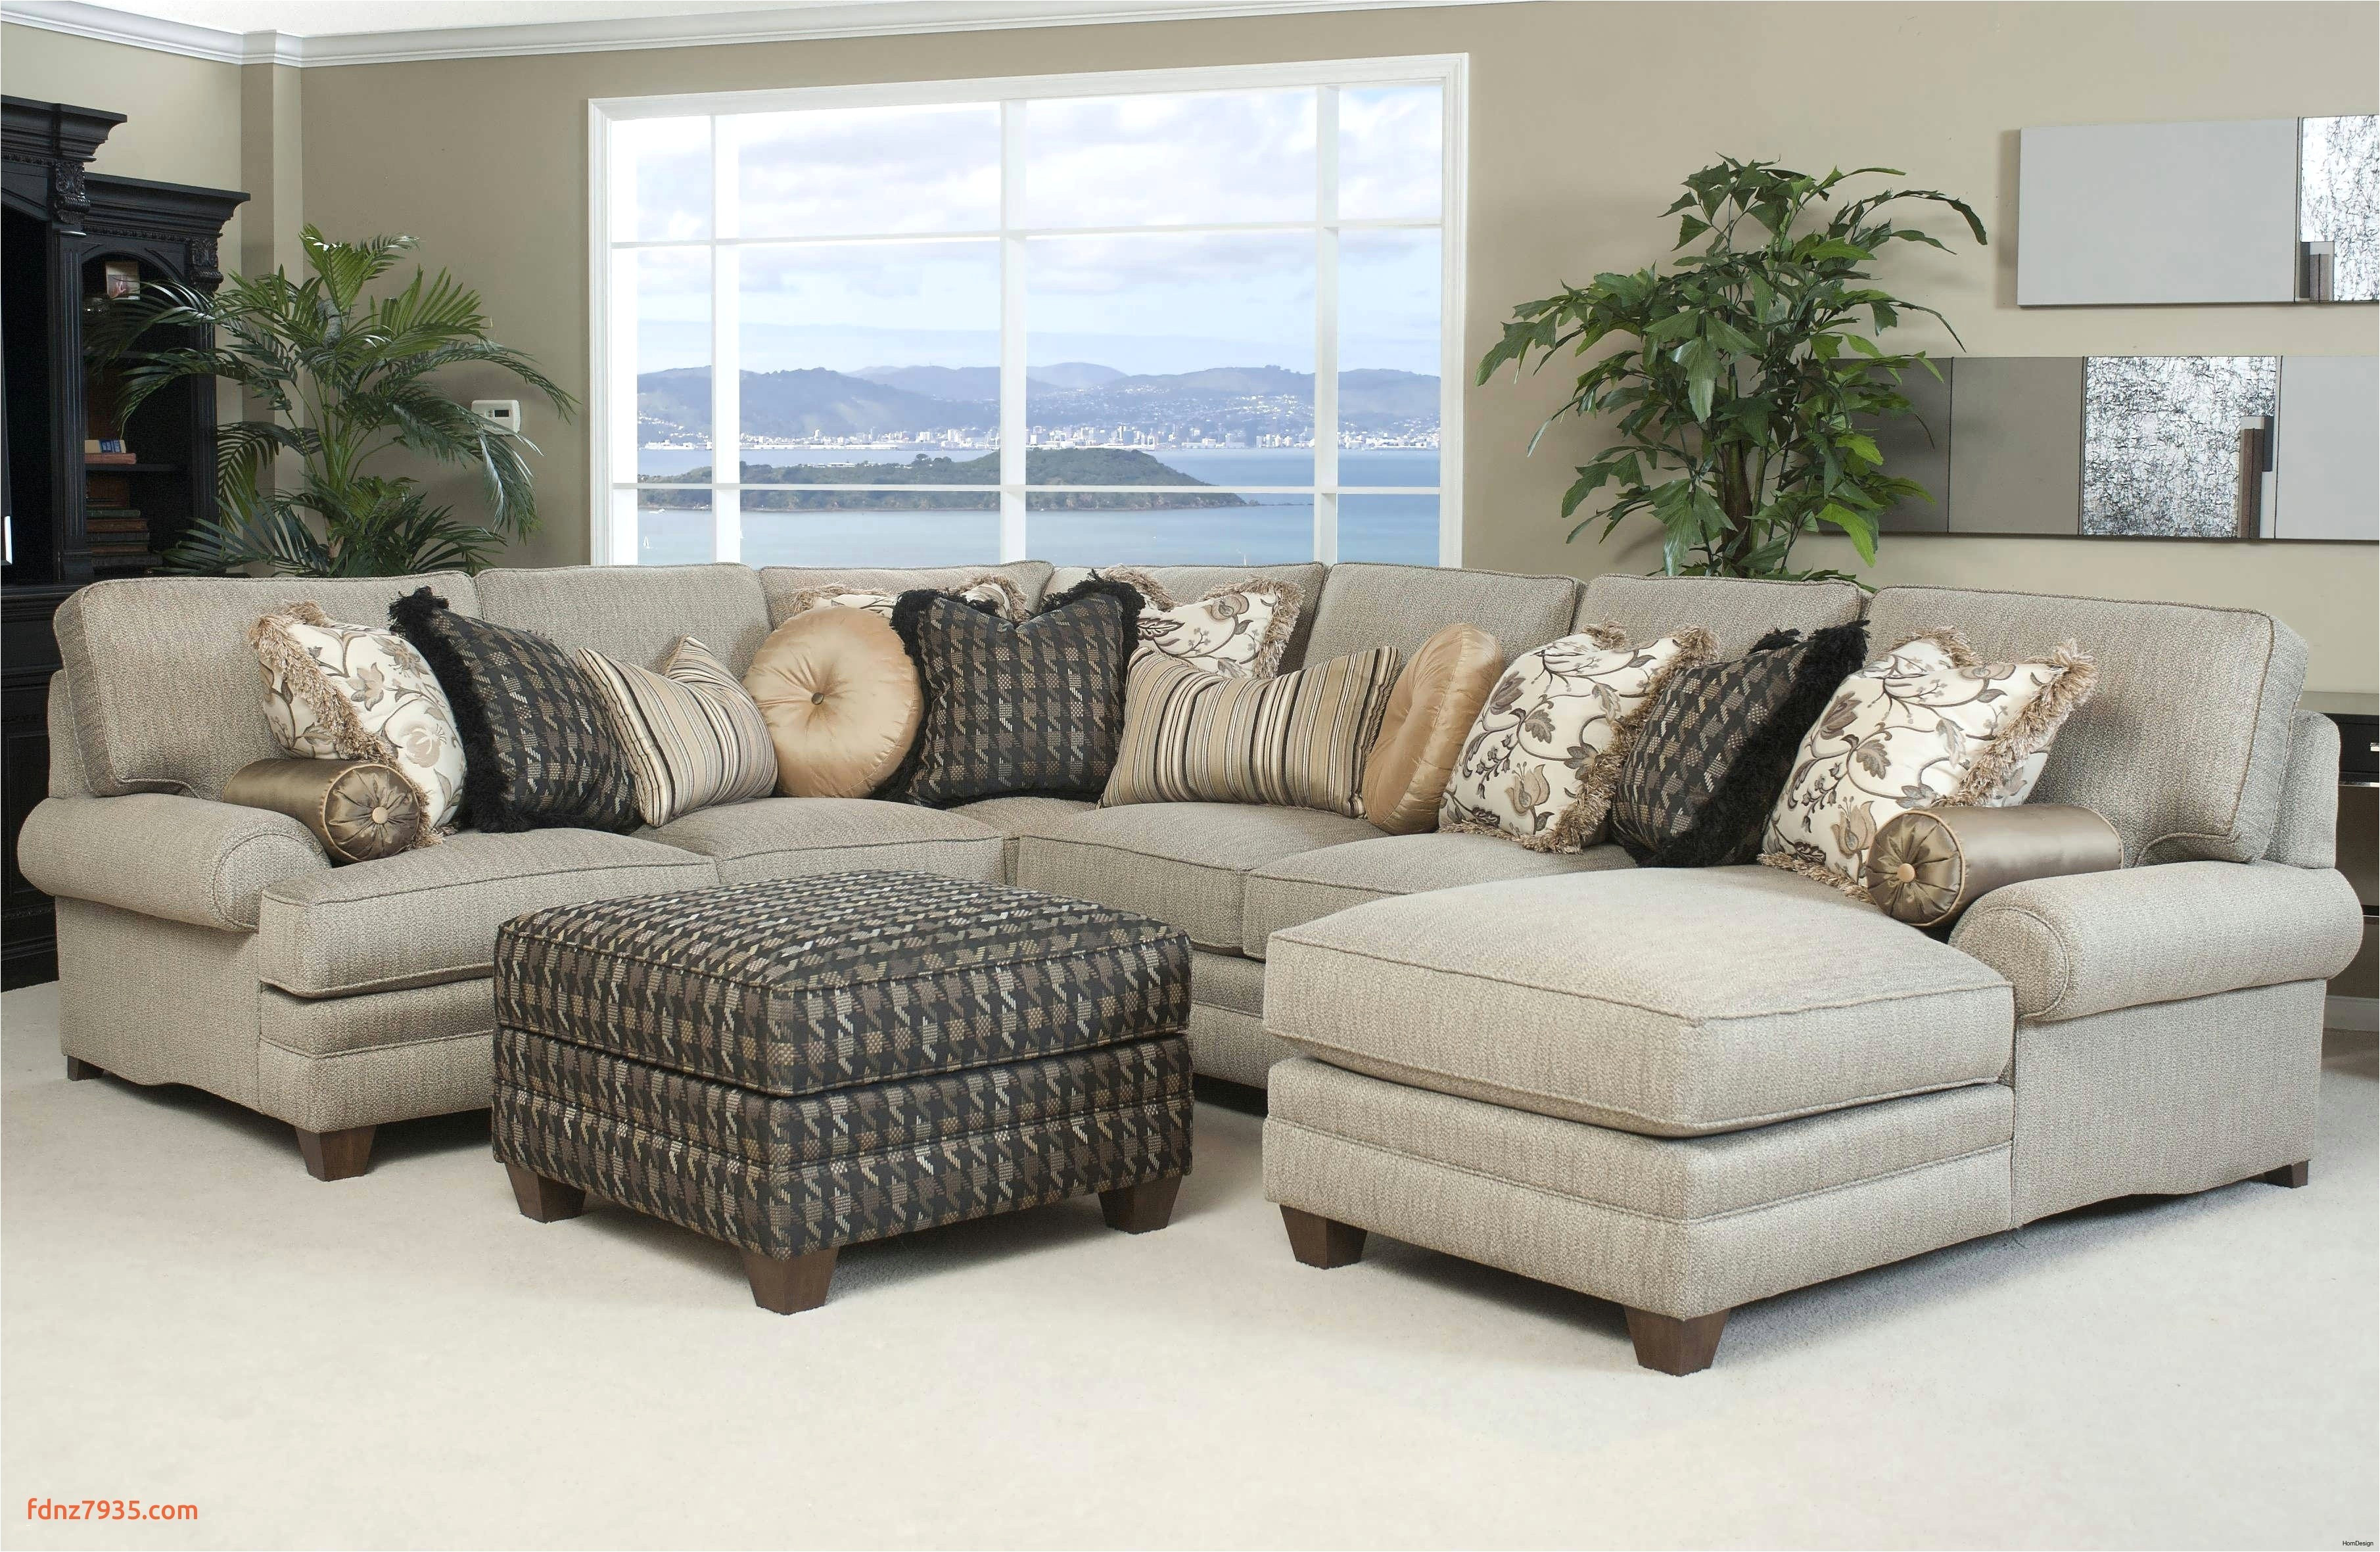 u shaped sofa sectionals luxury u shaped sectionals home design beckham sectional 0d with chaise